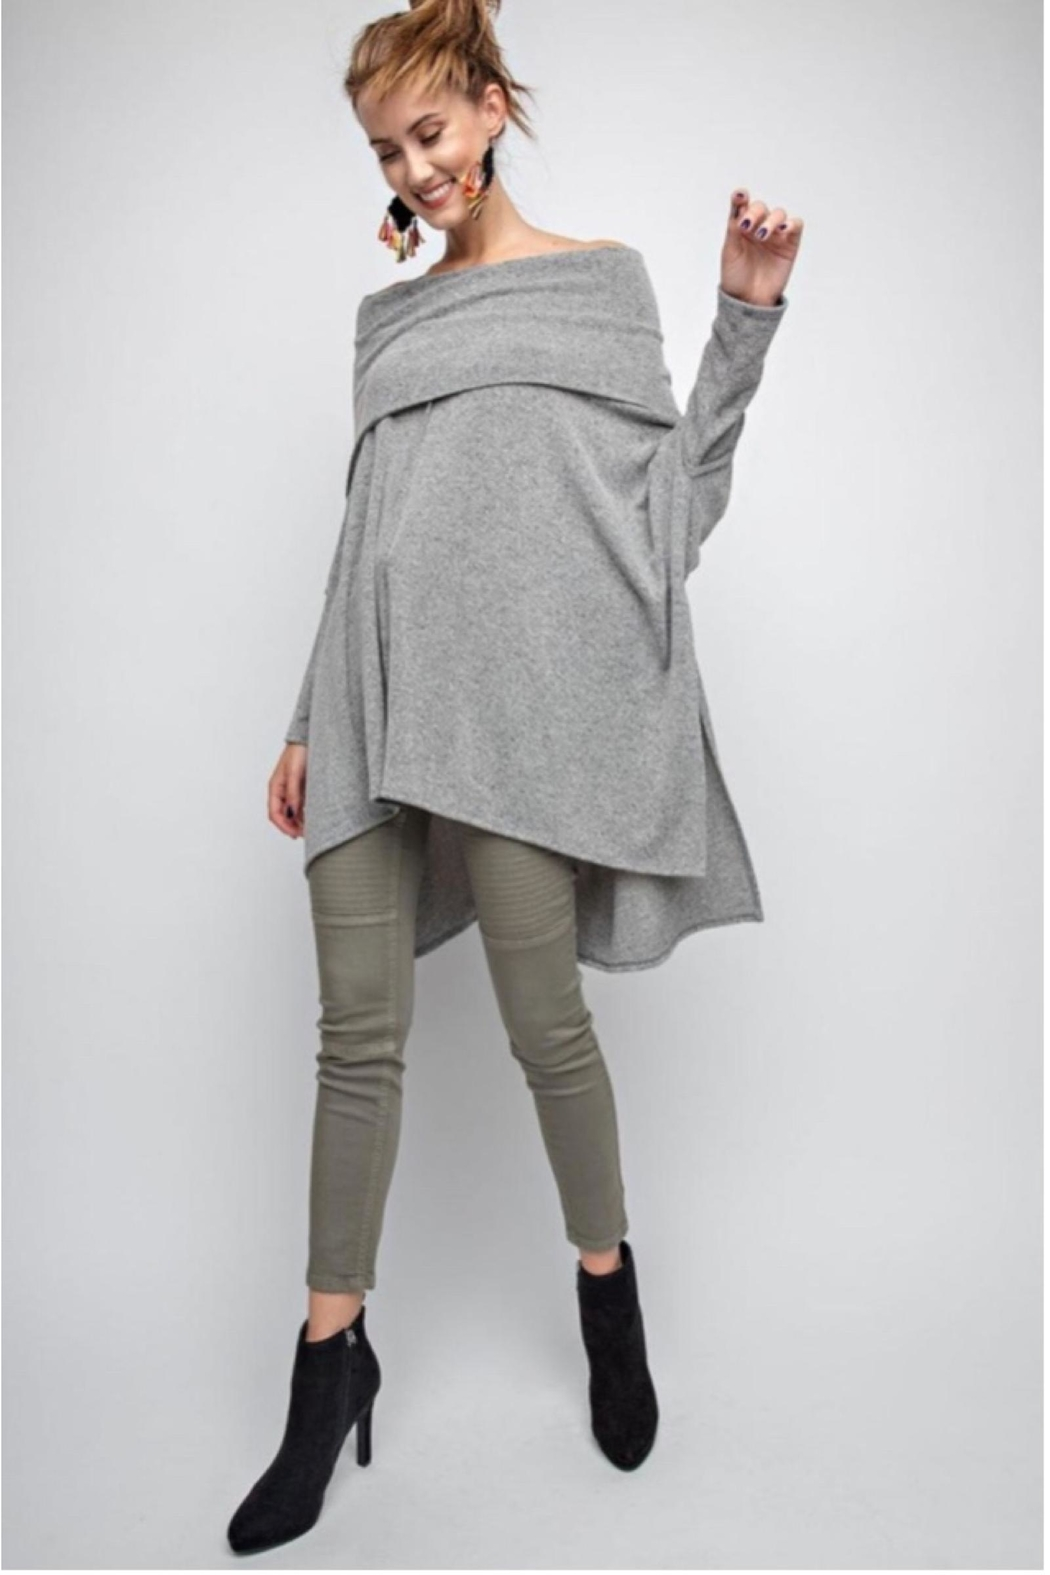 People Outfitter Asymmetrical Tunic Top - Main Image